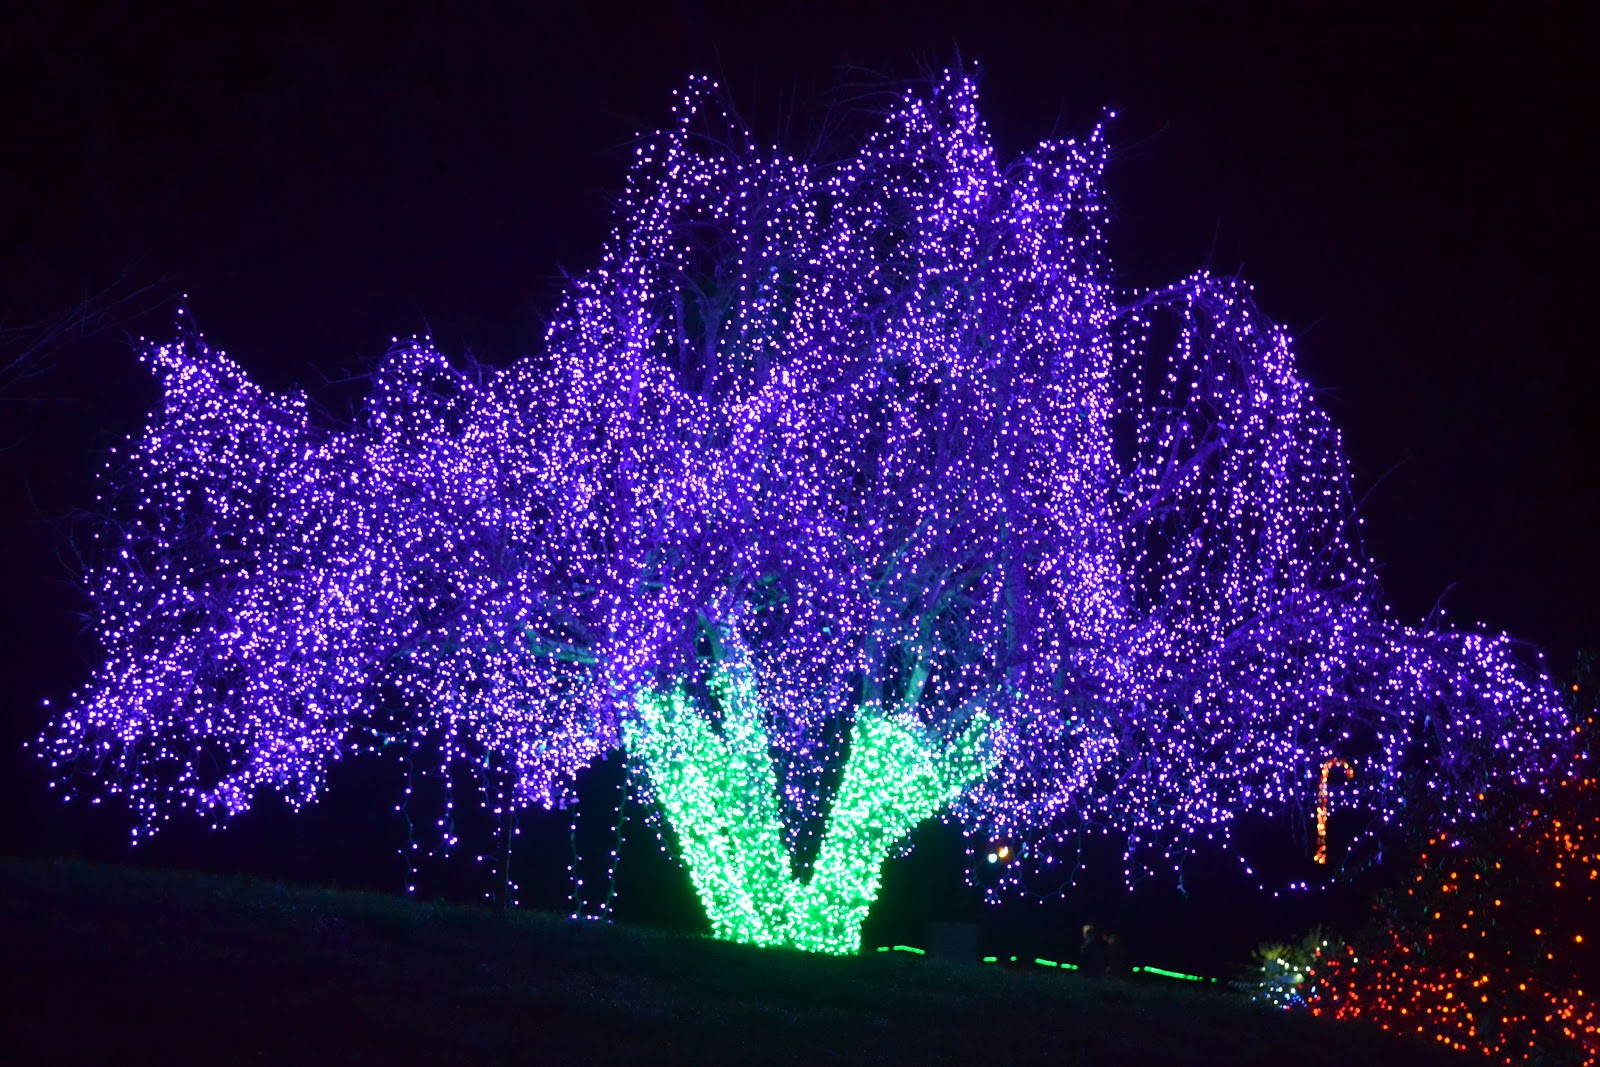 The Outlaw Gardener: On the ninth day of Christmas, Zoo Lights the ...